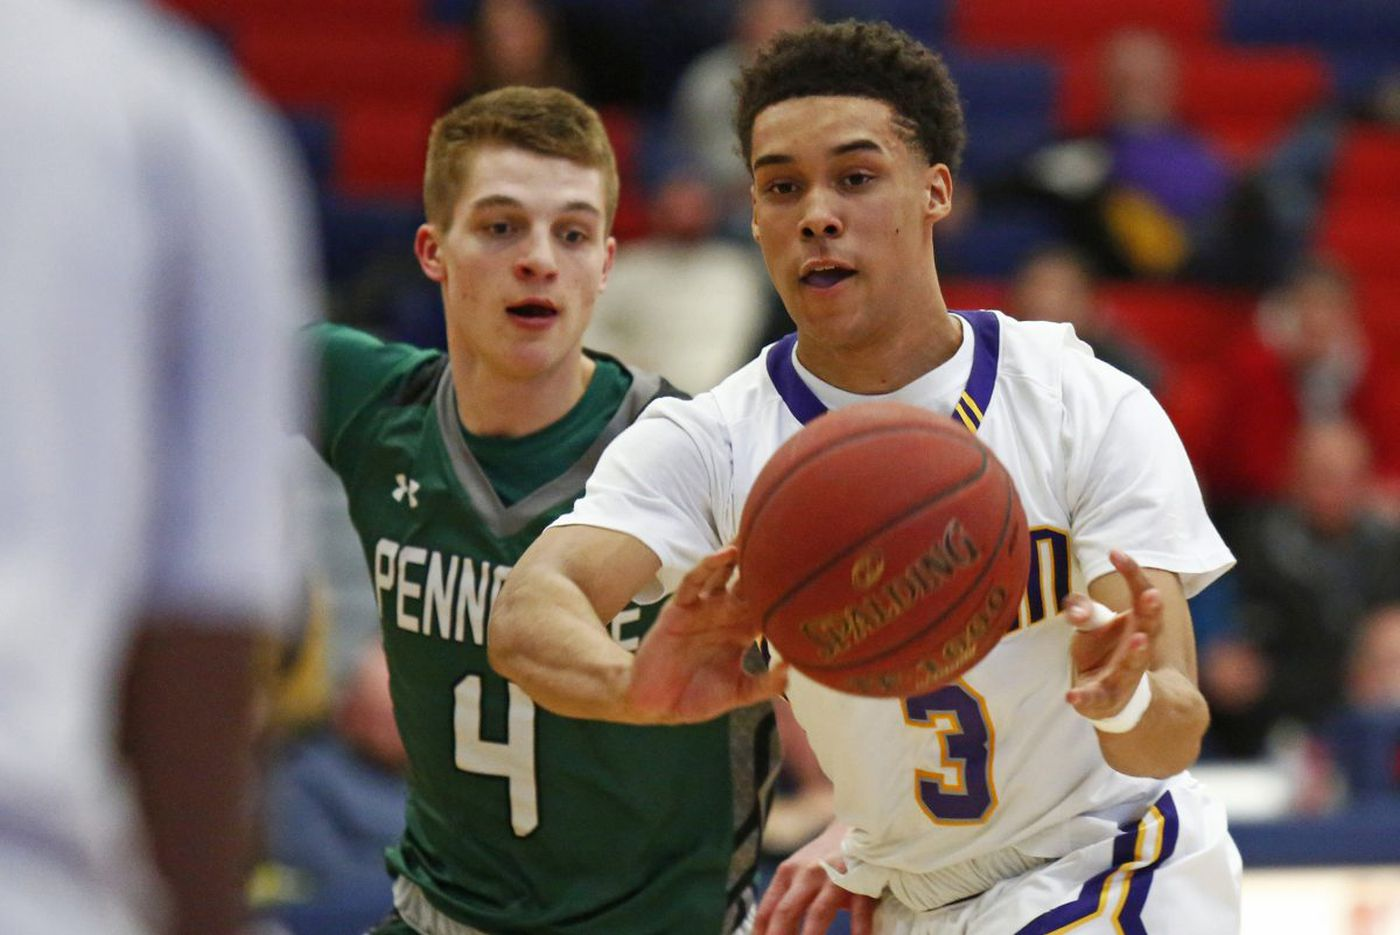 PIAA basketball playoffs: Two heavyweight fights on tap